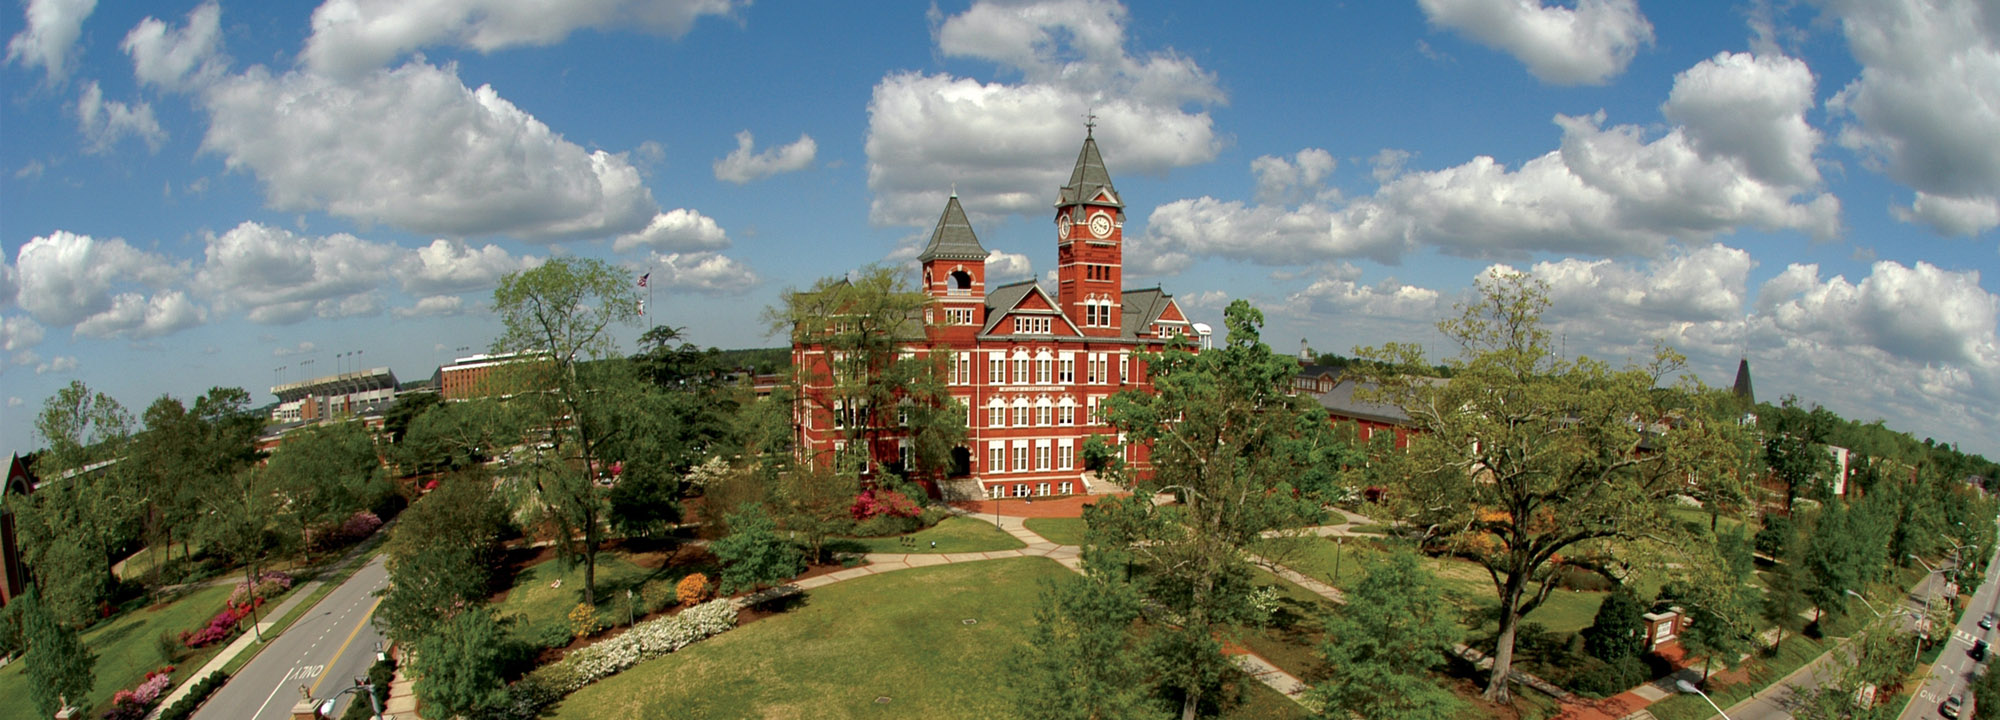 Samford Hall from Drone view